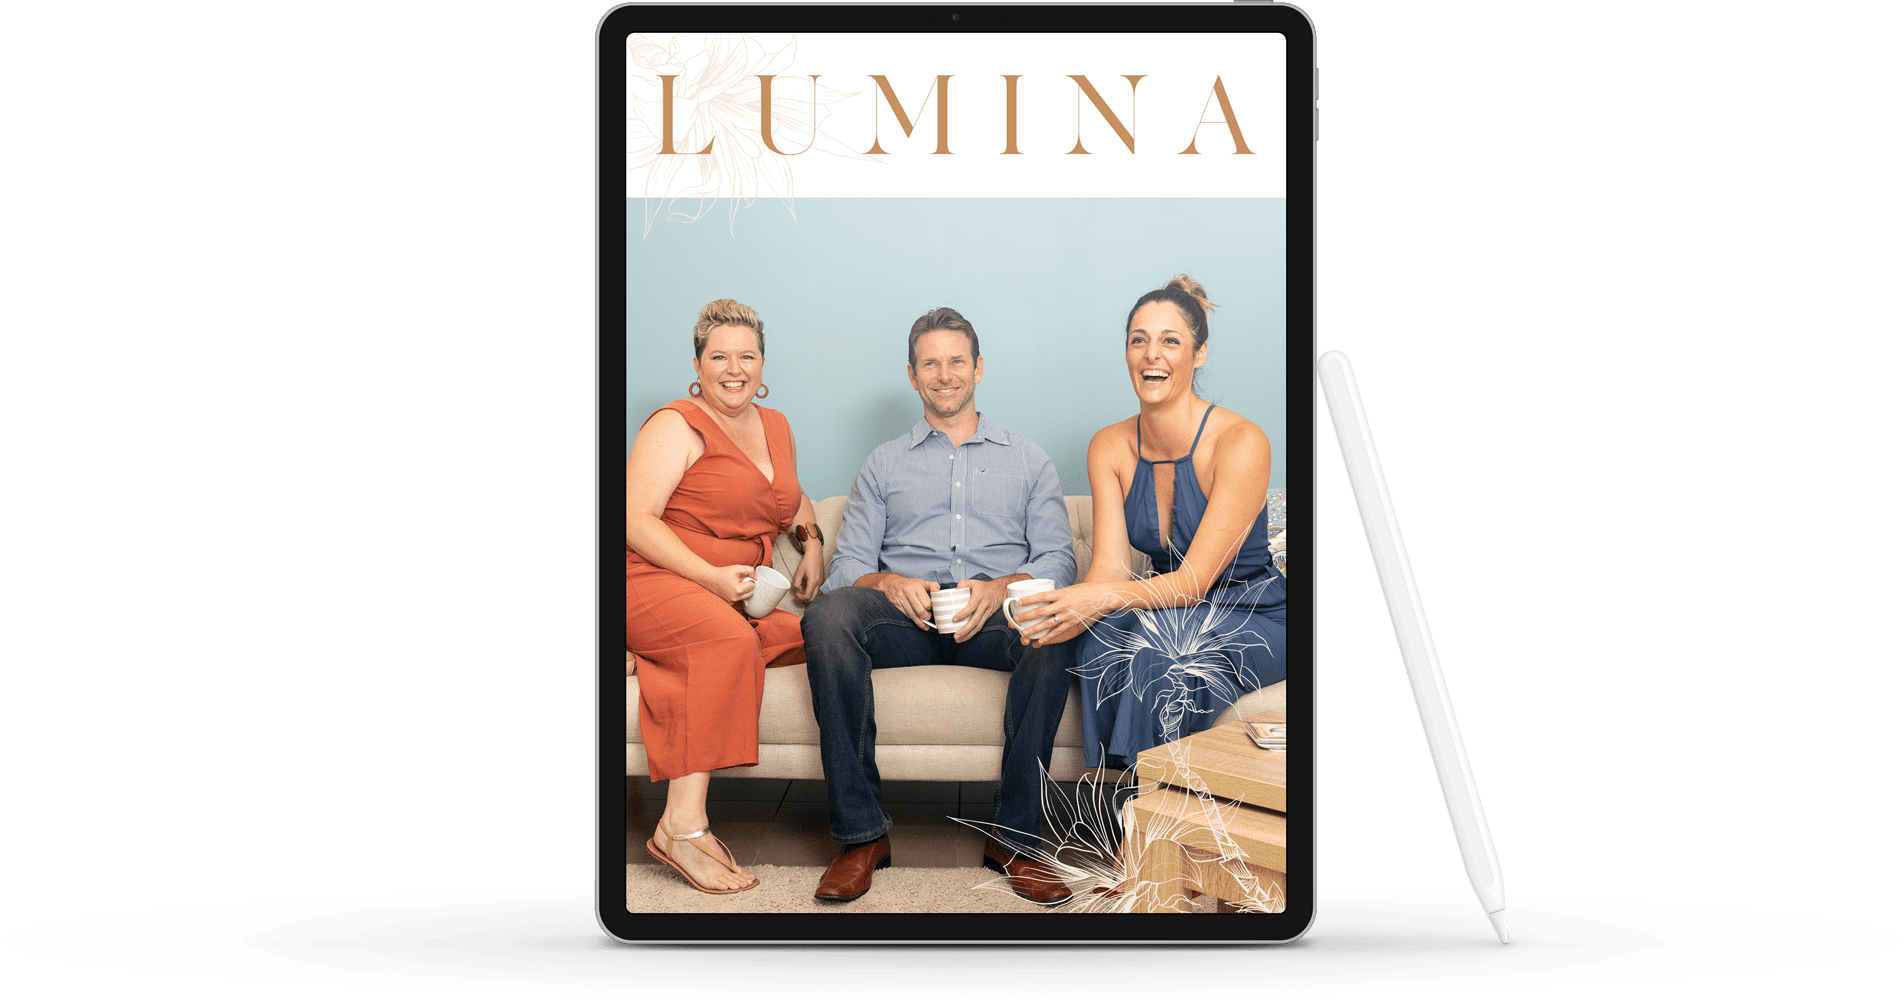 Lumina Website Be Empowered With Confidence To Shine